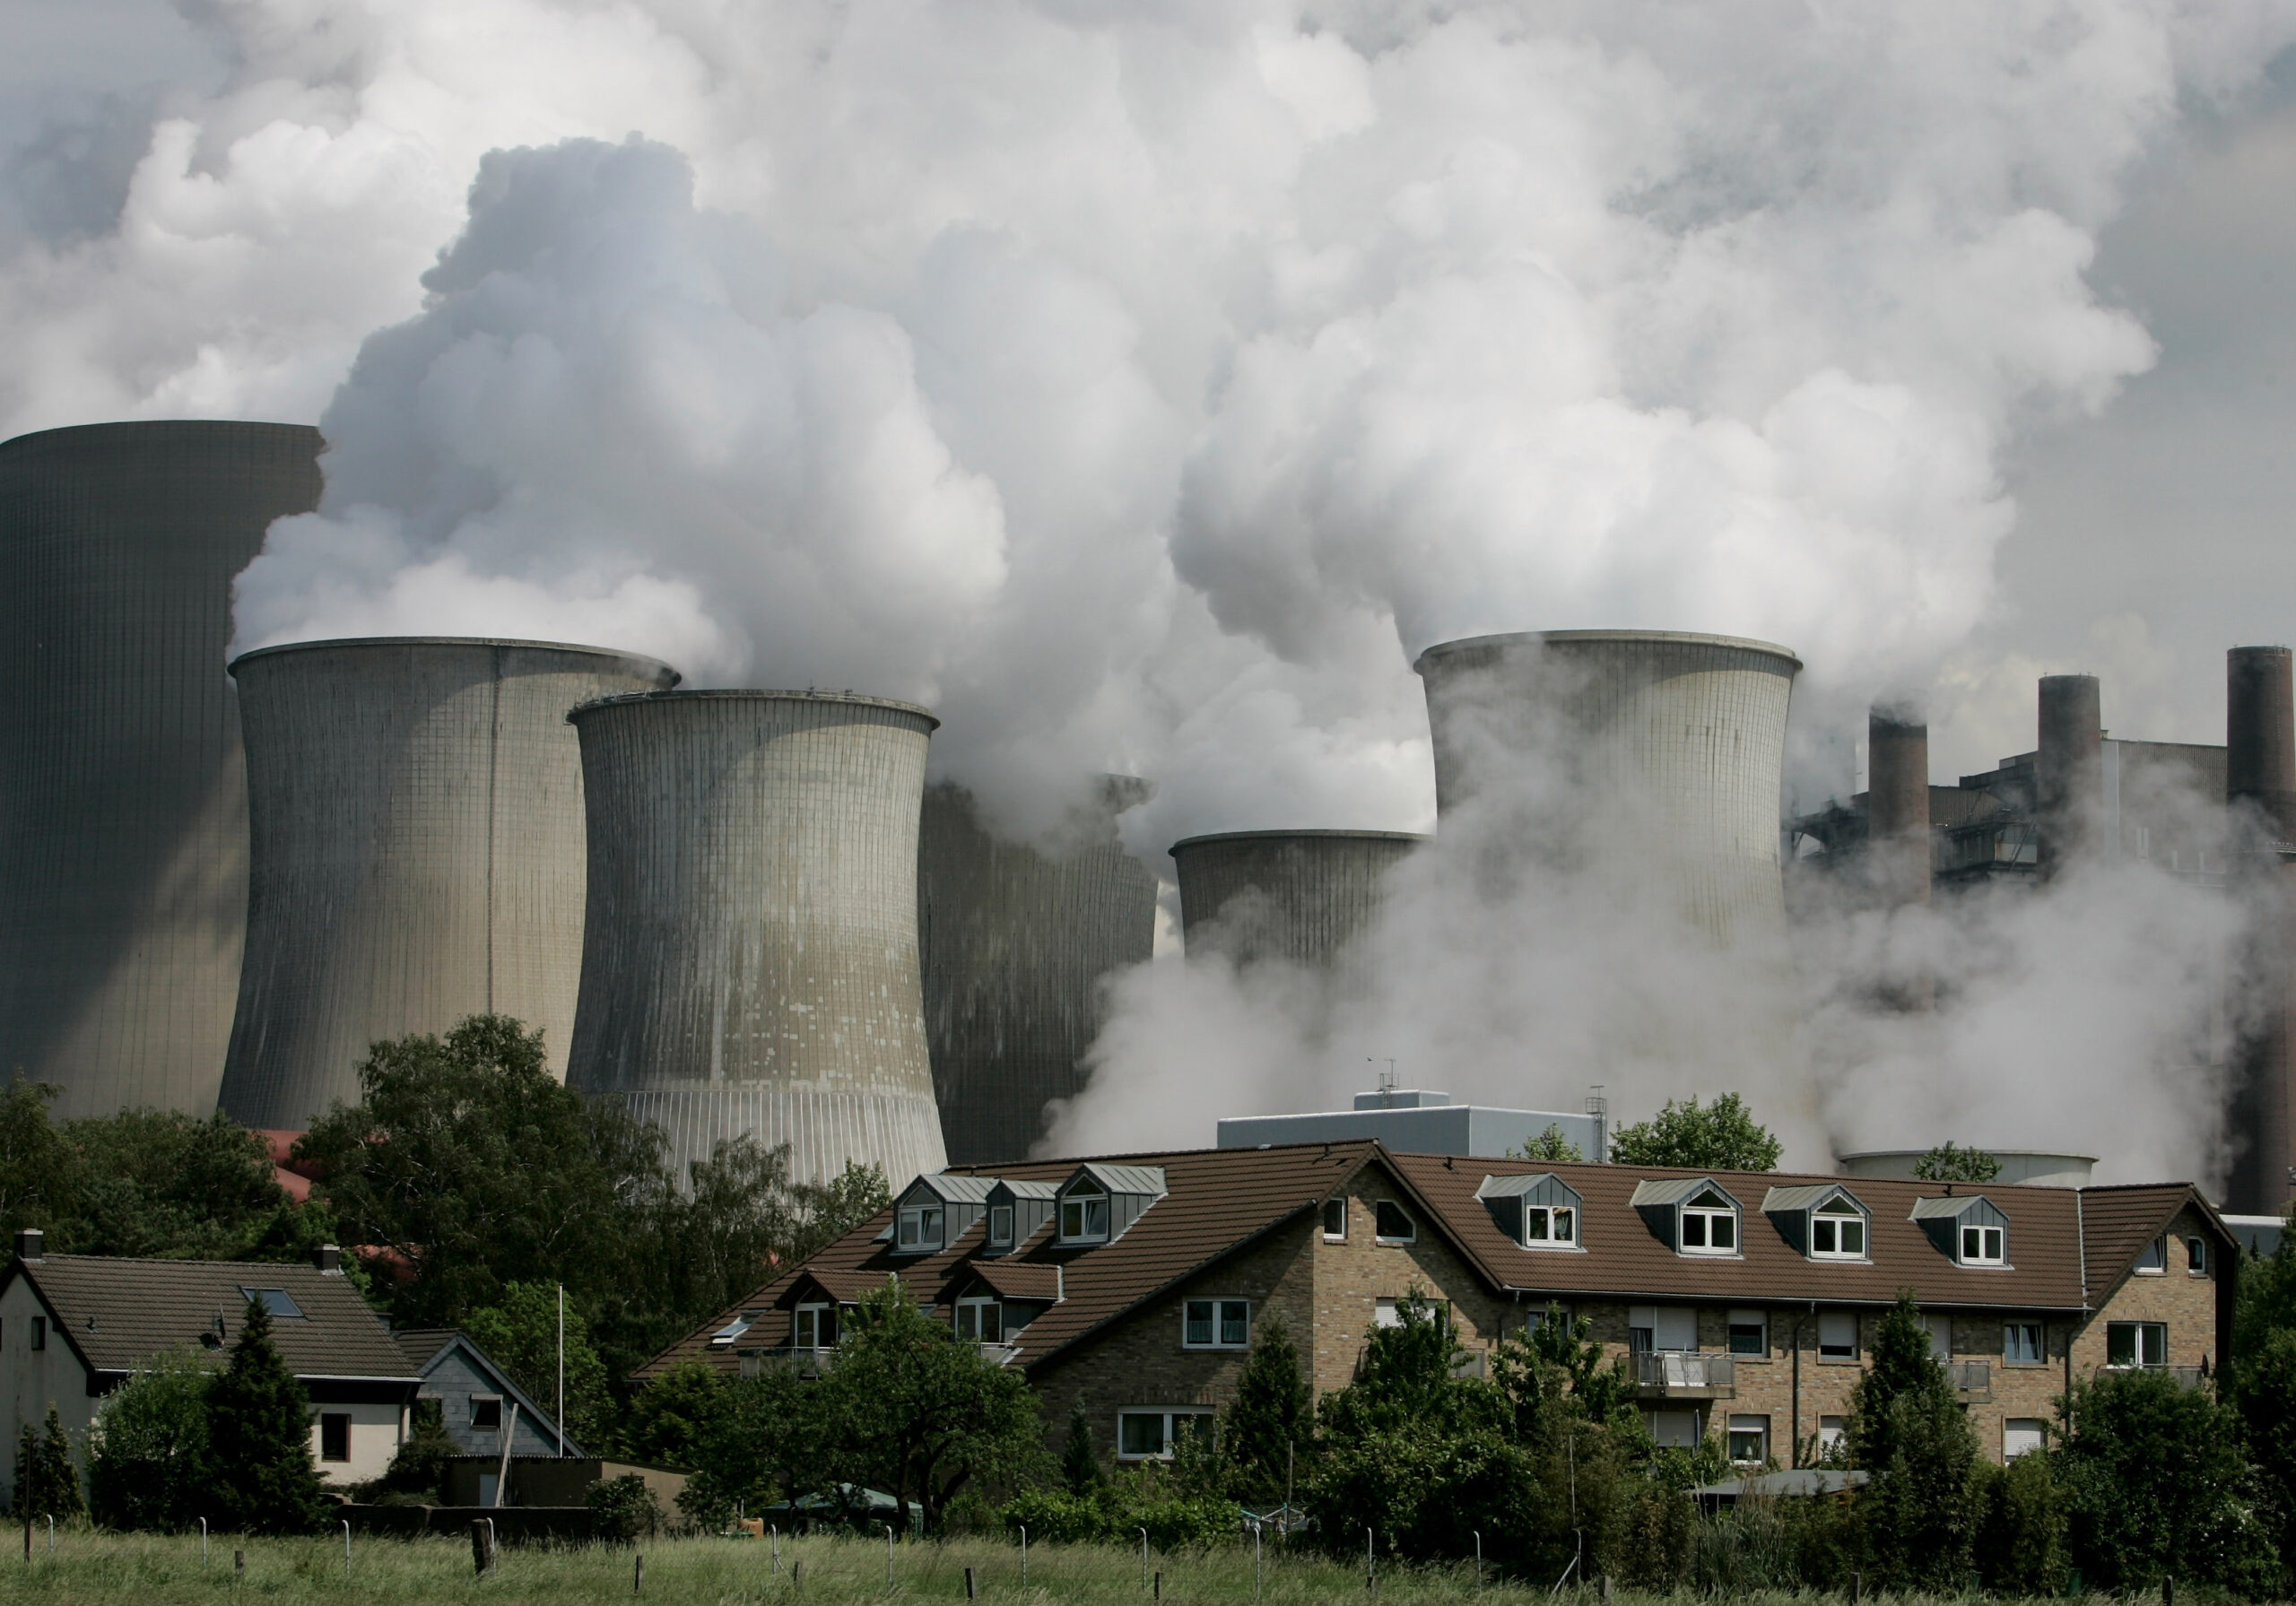 Exhaust rises from cooling towers at a coal-fired power station in Germany. Credit: Ralph Orlowski/Getty Images